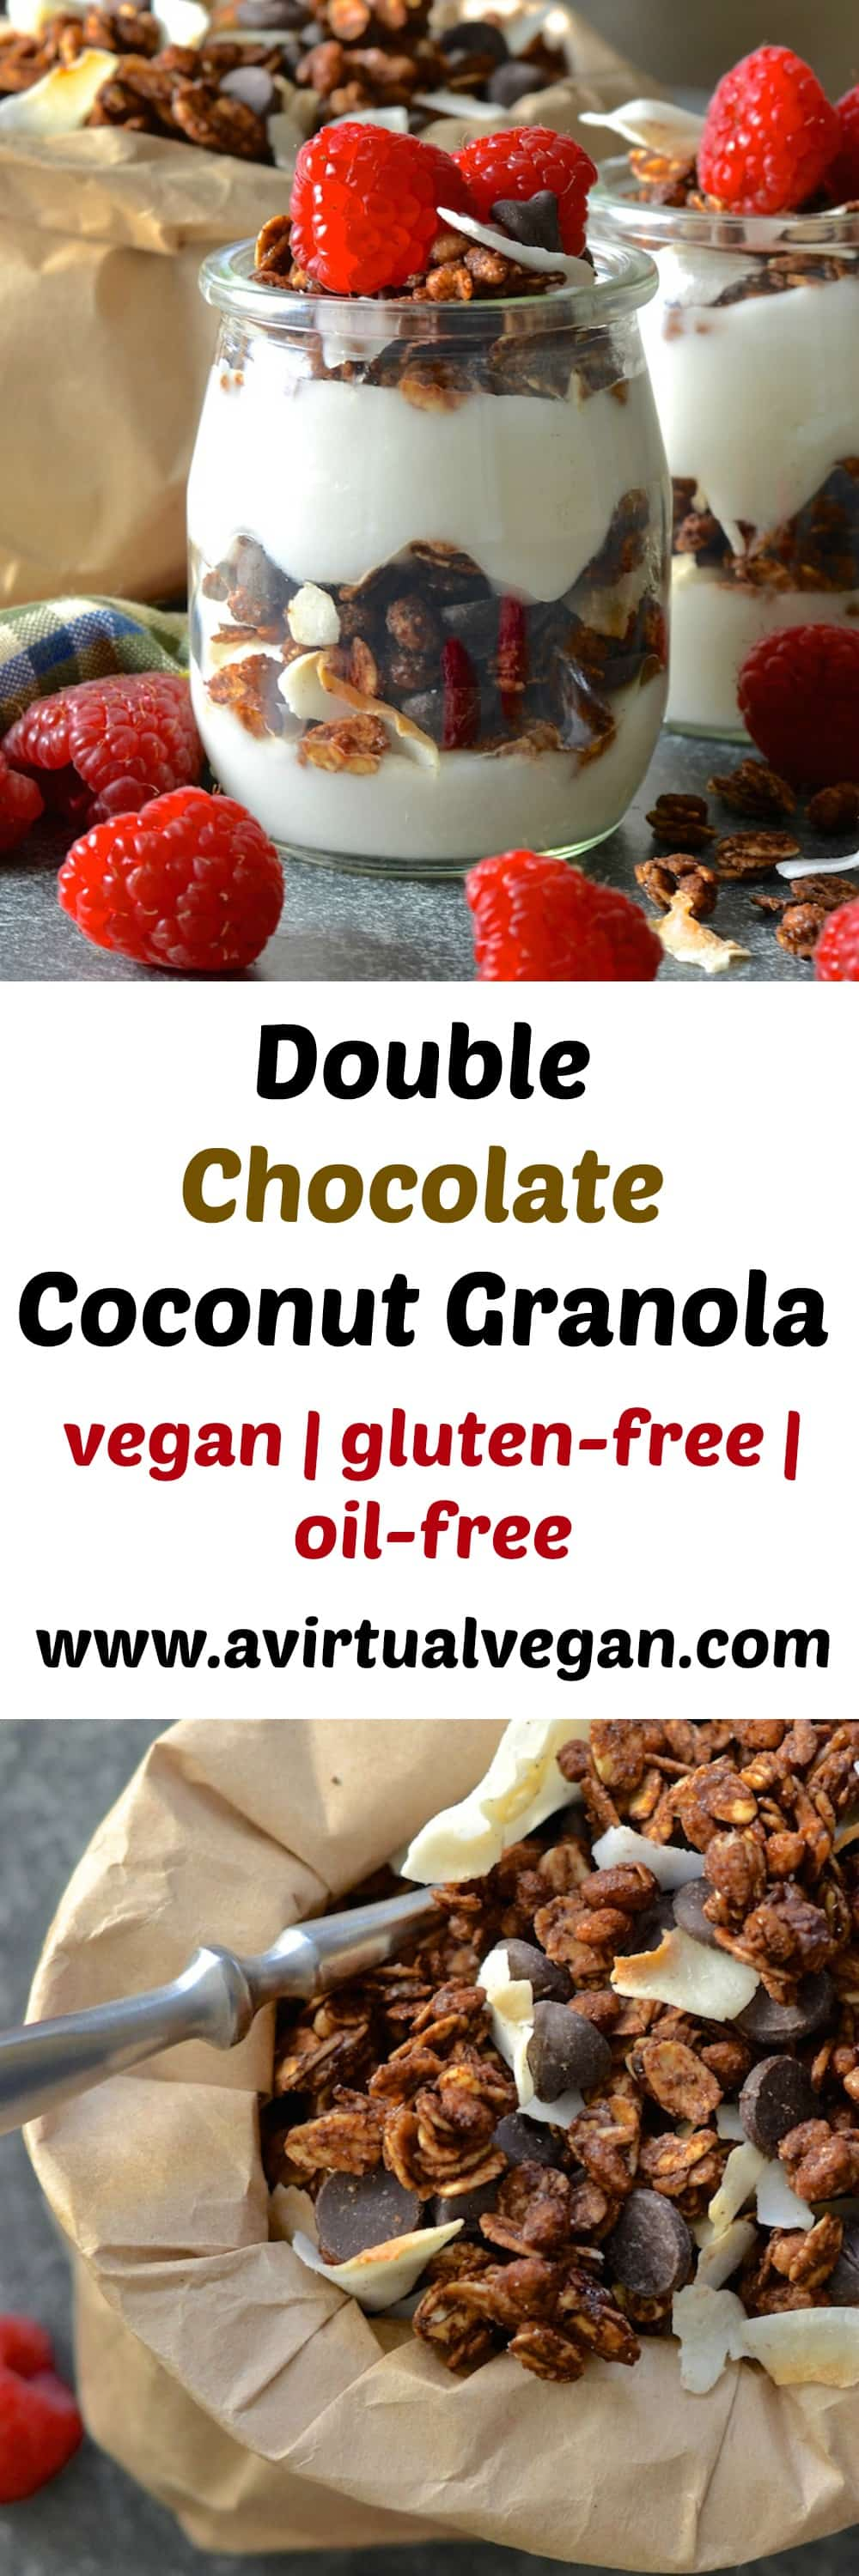 This is the ultimate double chocolate coconut granola recipe. Crunchy, chewy, chocolatey, coconutty, not too sweet, slightly salty…..Flippin' gorgeous!